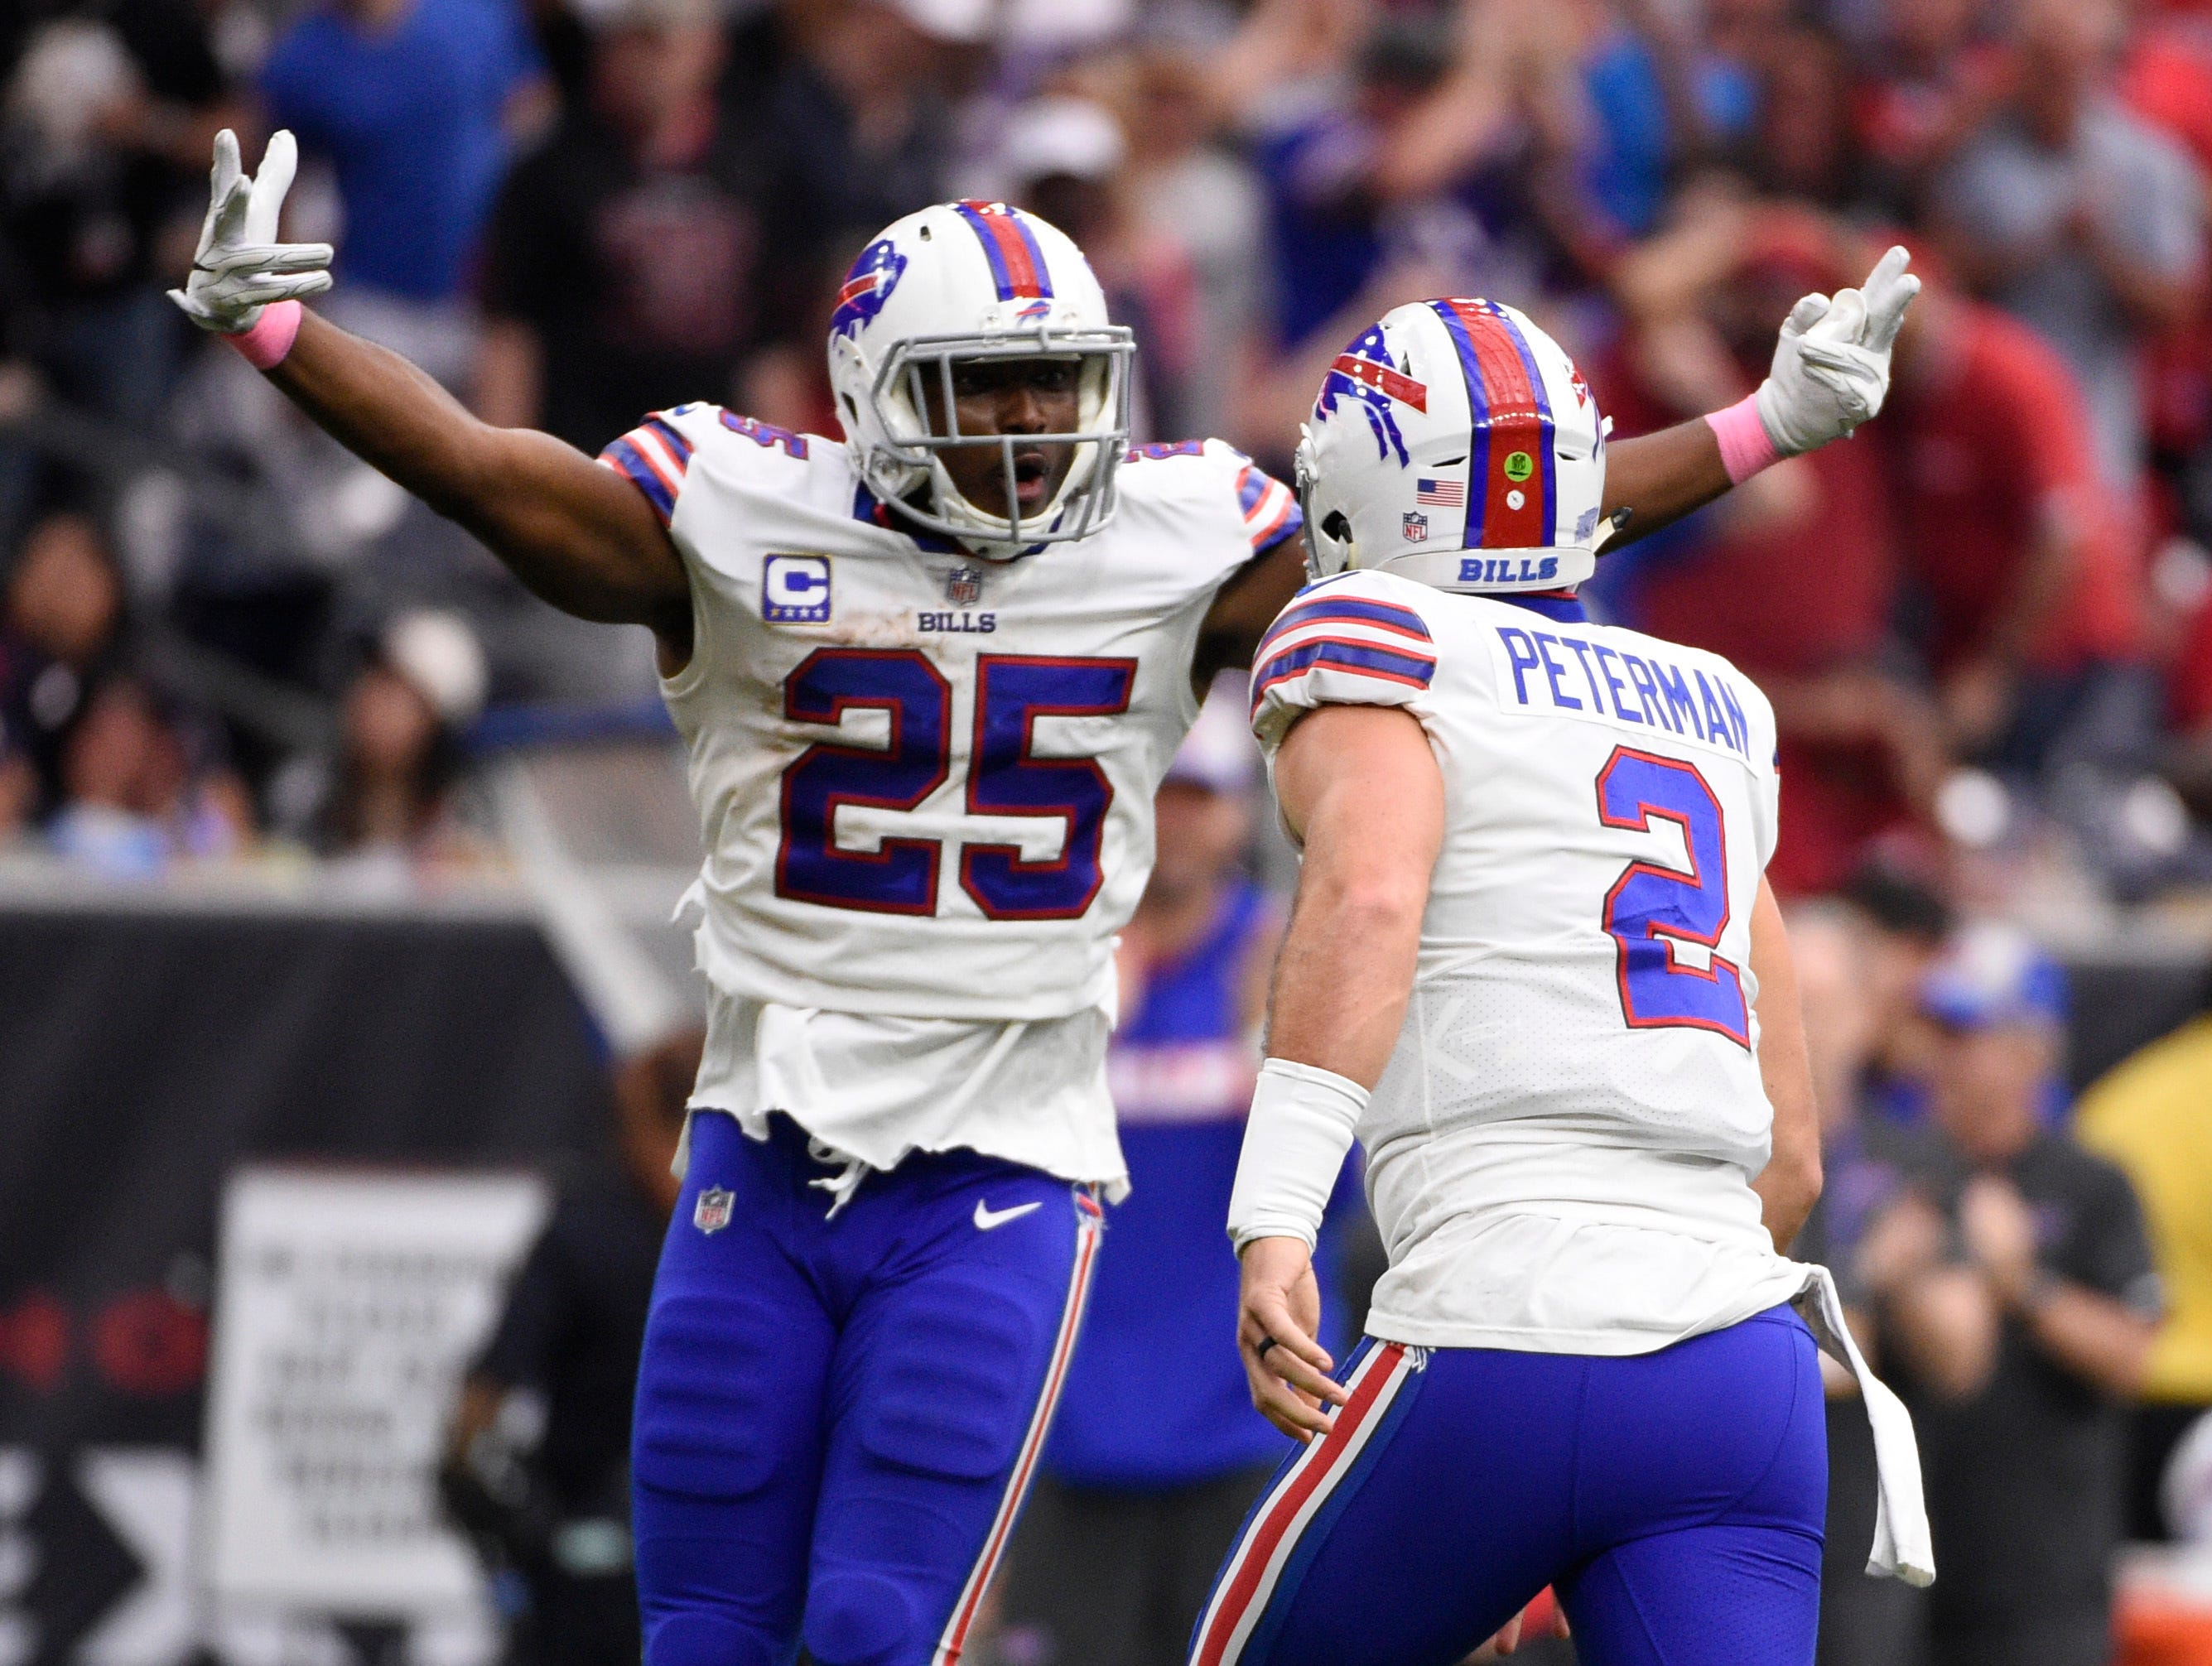 Buffalo Bills quarterback Nathan Peterman (2) celebrates his touchdown pass against the Houston Texans with teammate LeSean McCoy (25) during the second half of an NFL football game, Sunday, Oct. 14, 2018, in Houston. (AP Photo/Eric Christian Smith)